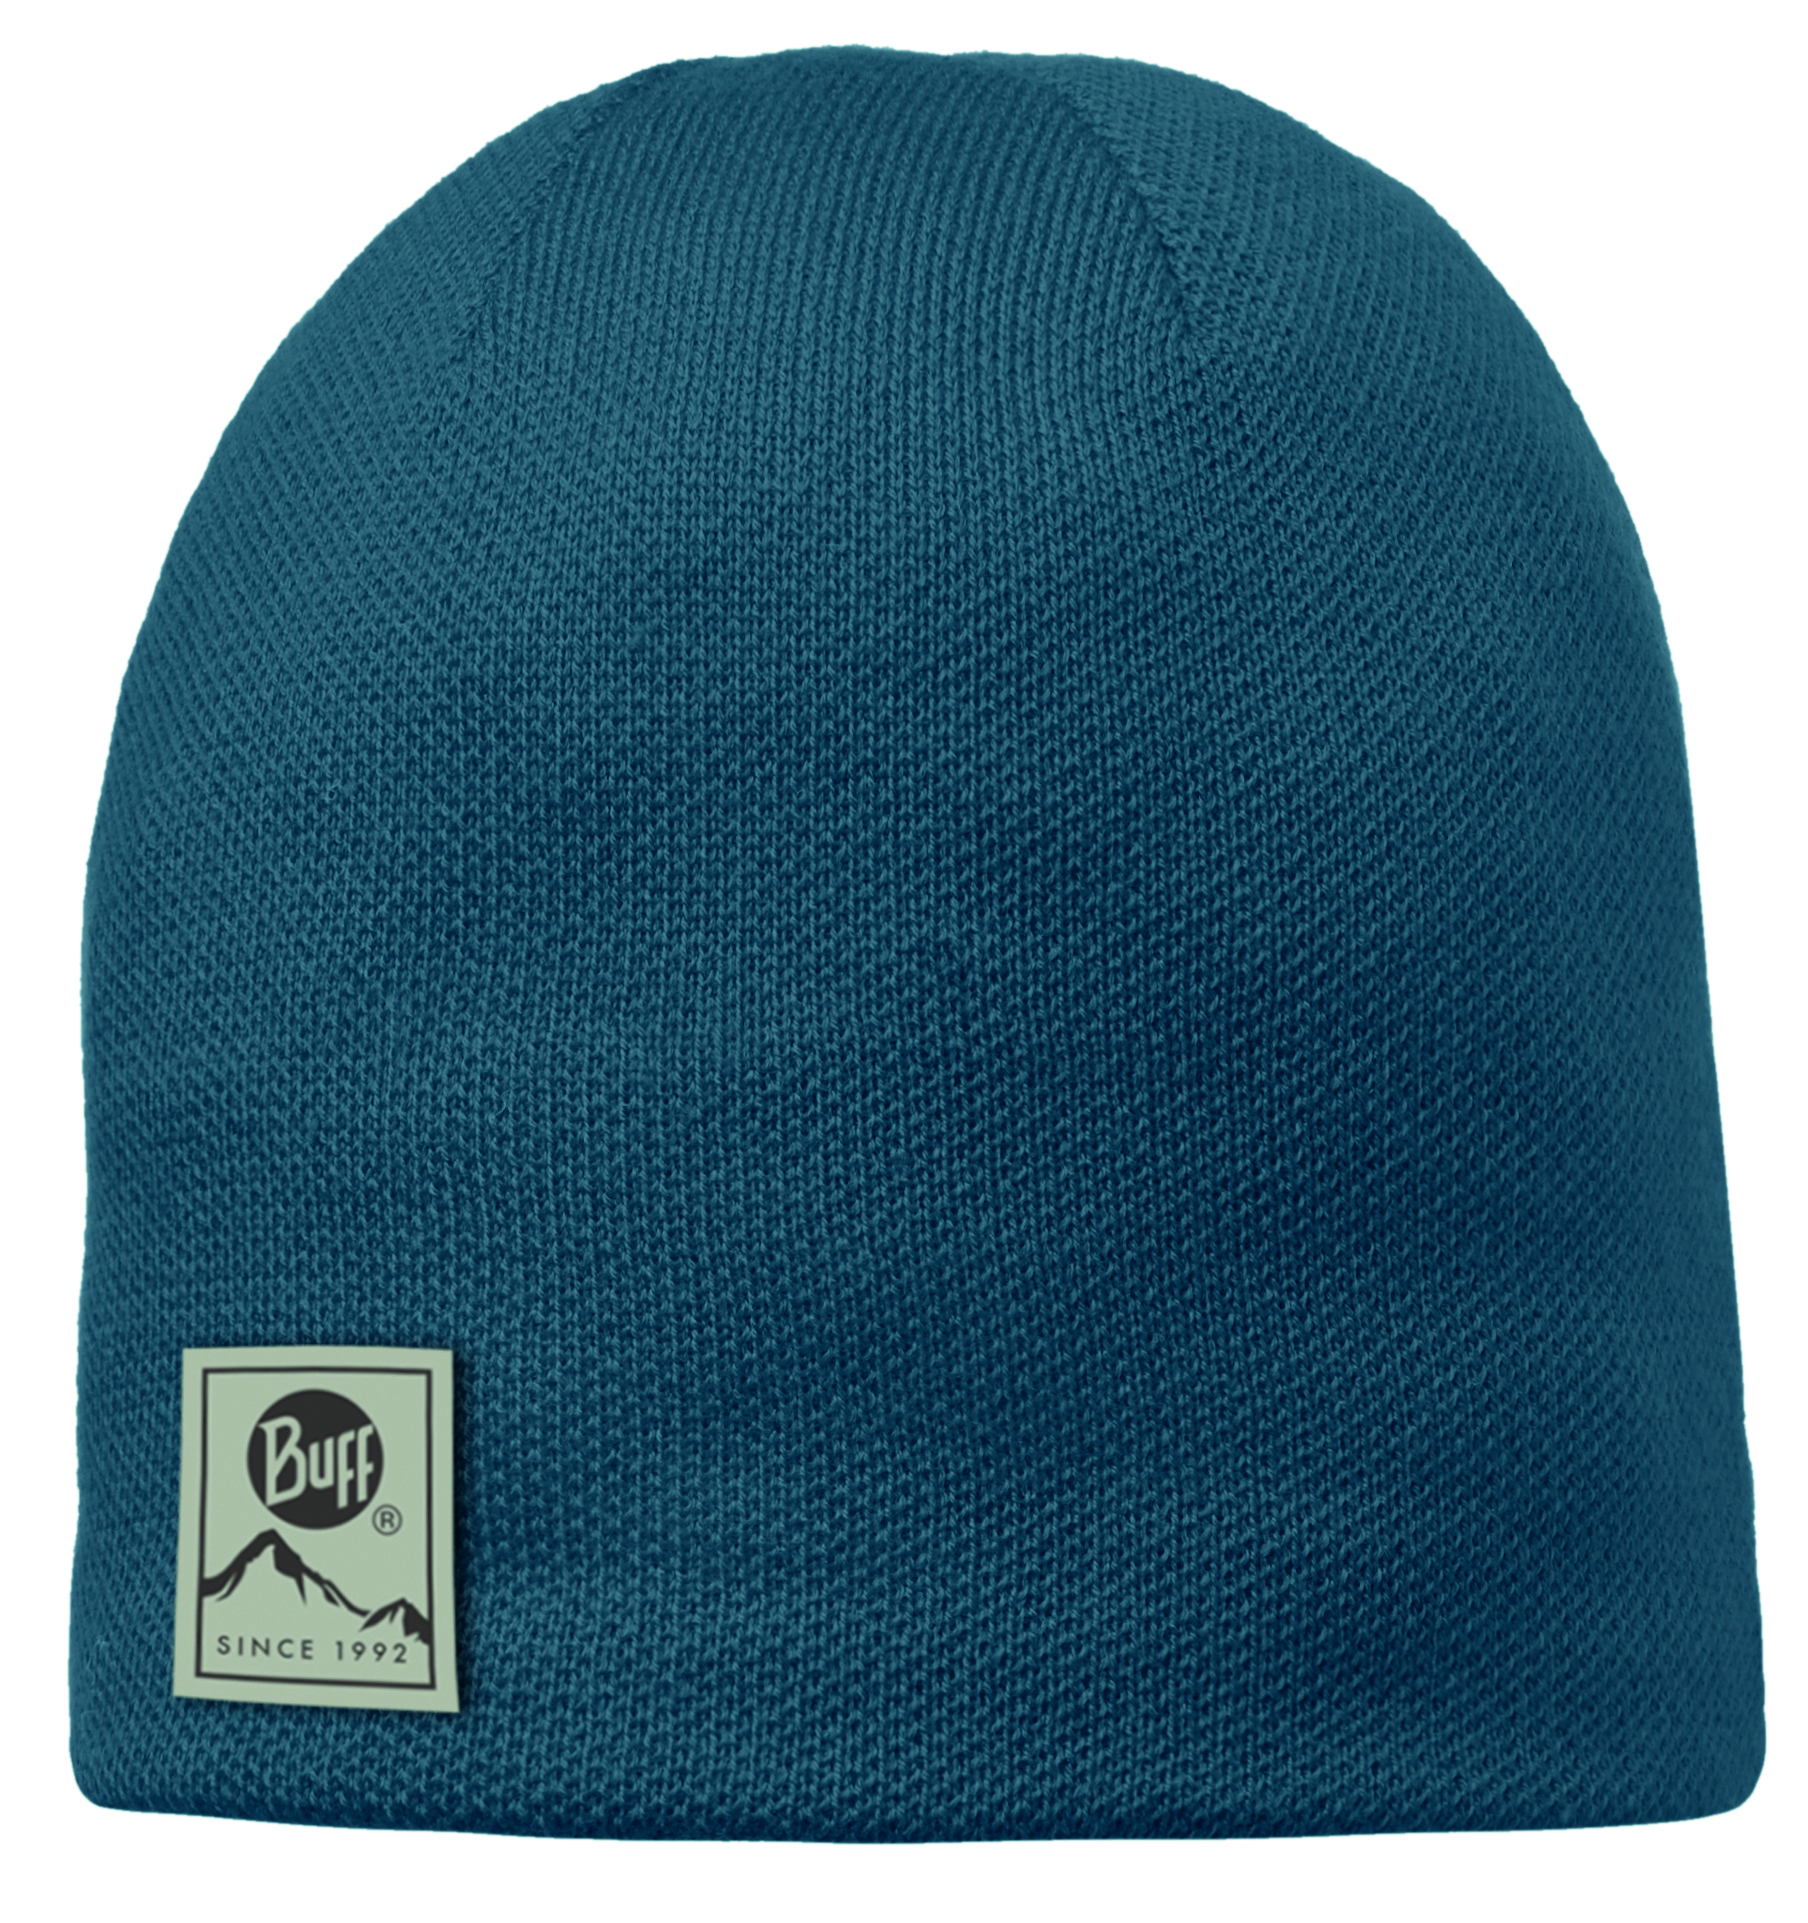 Шапка BUFF 2015-16 KNITTED HATS BUFF SOLID OCEAN